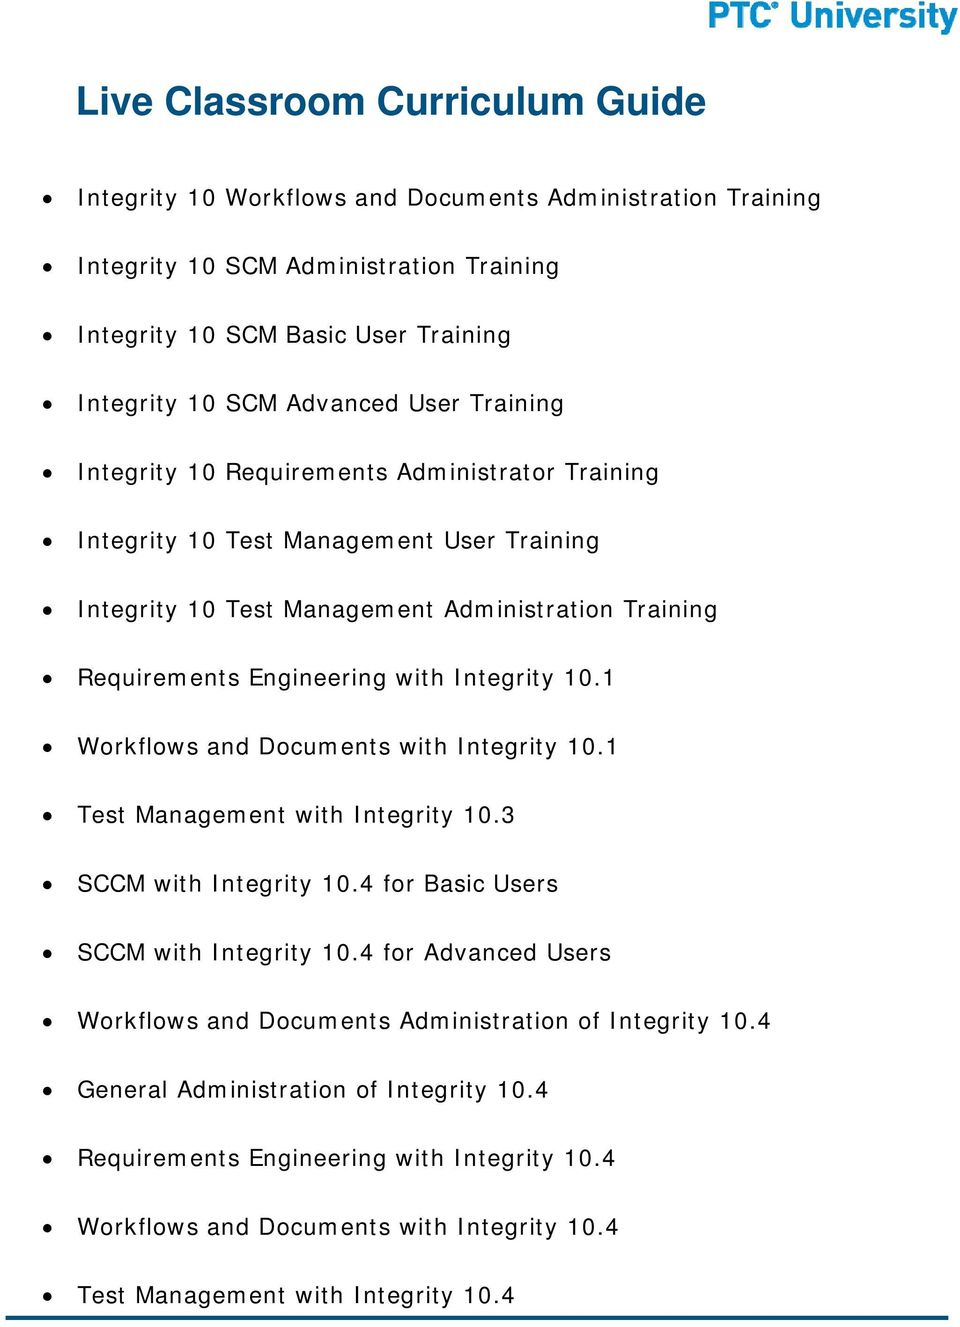 Integrity 10.1 Workflows and Documents with Integrity 10.1 Test Management with Integrity 10.3 SCCM with Integrity 10.4 for Basic Users SCCM with Integrity 10.